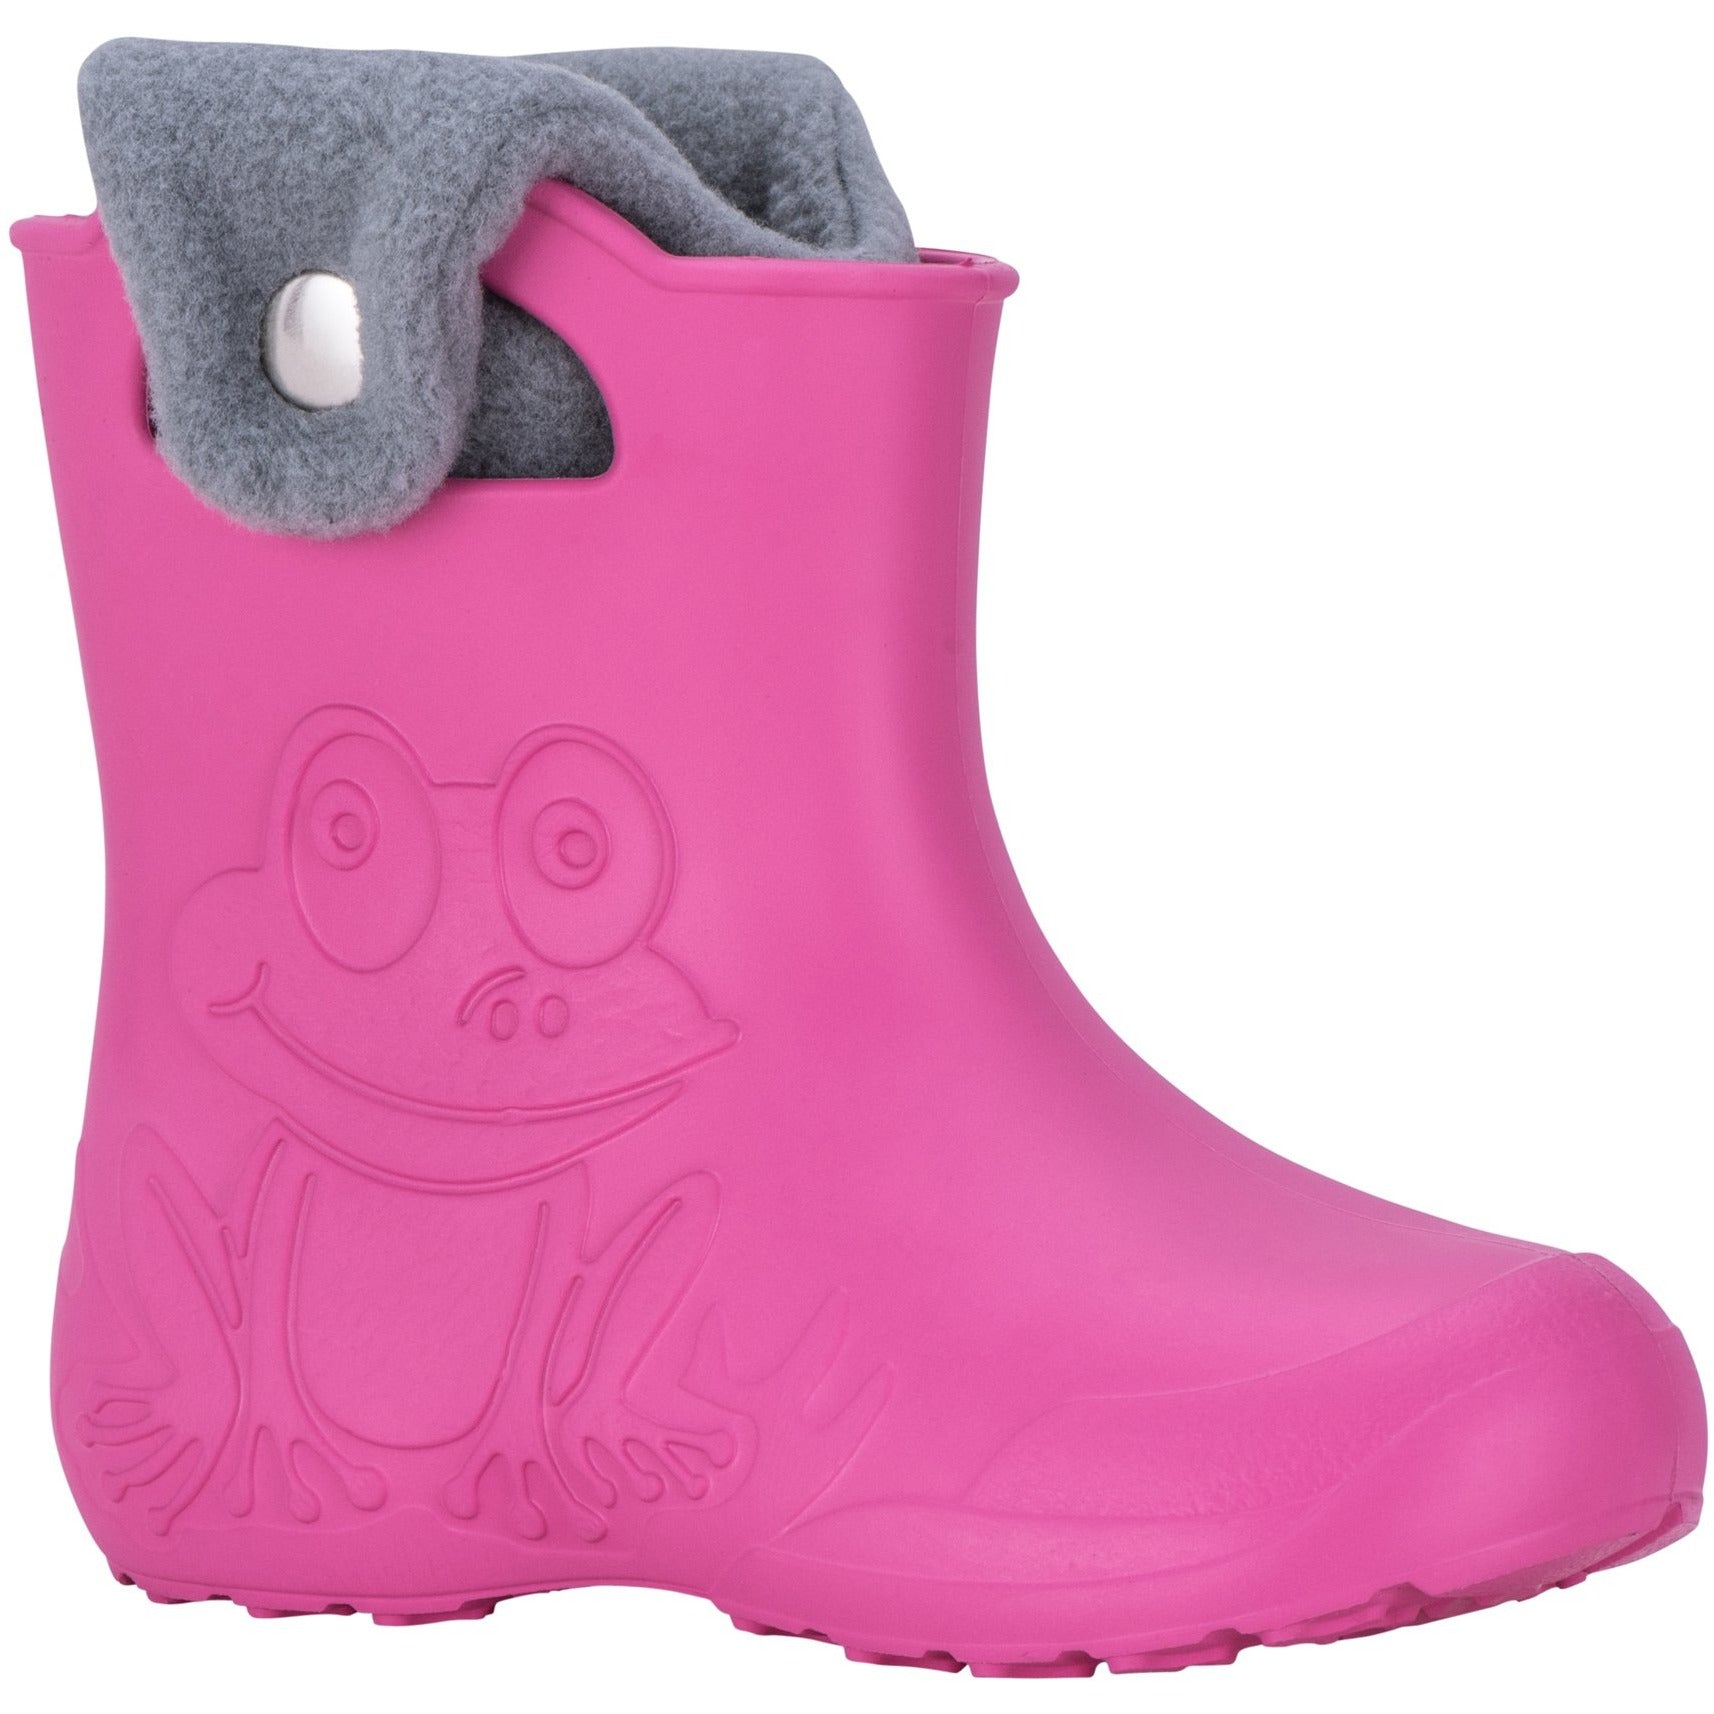 Kids Froggy Gumboot - pink